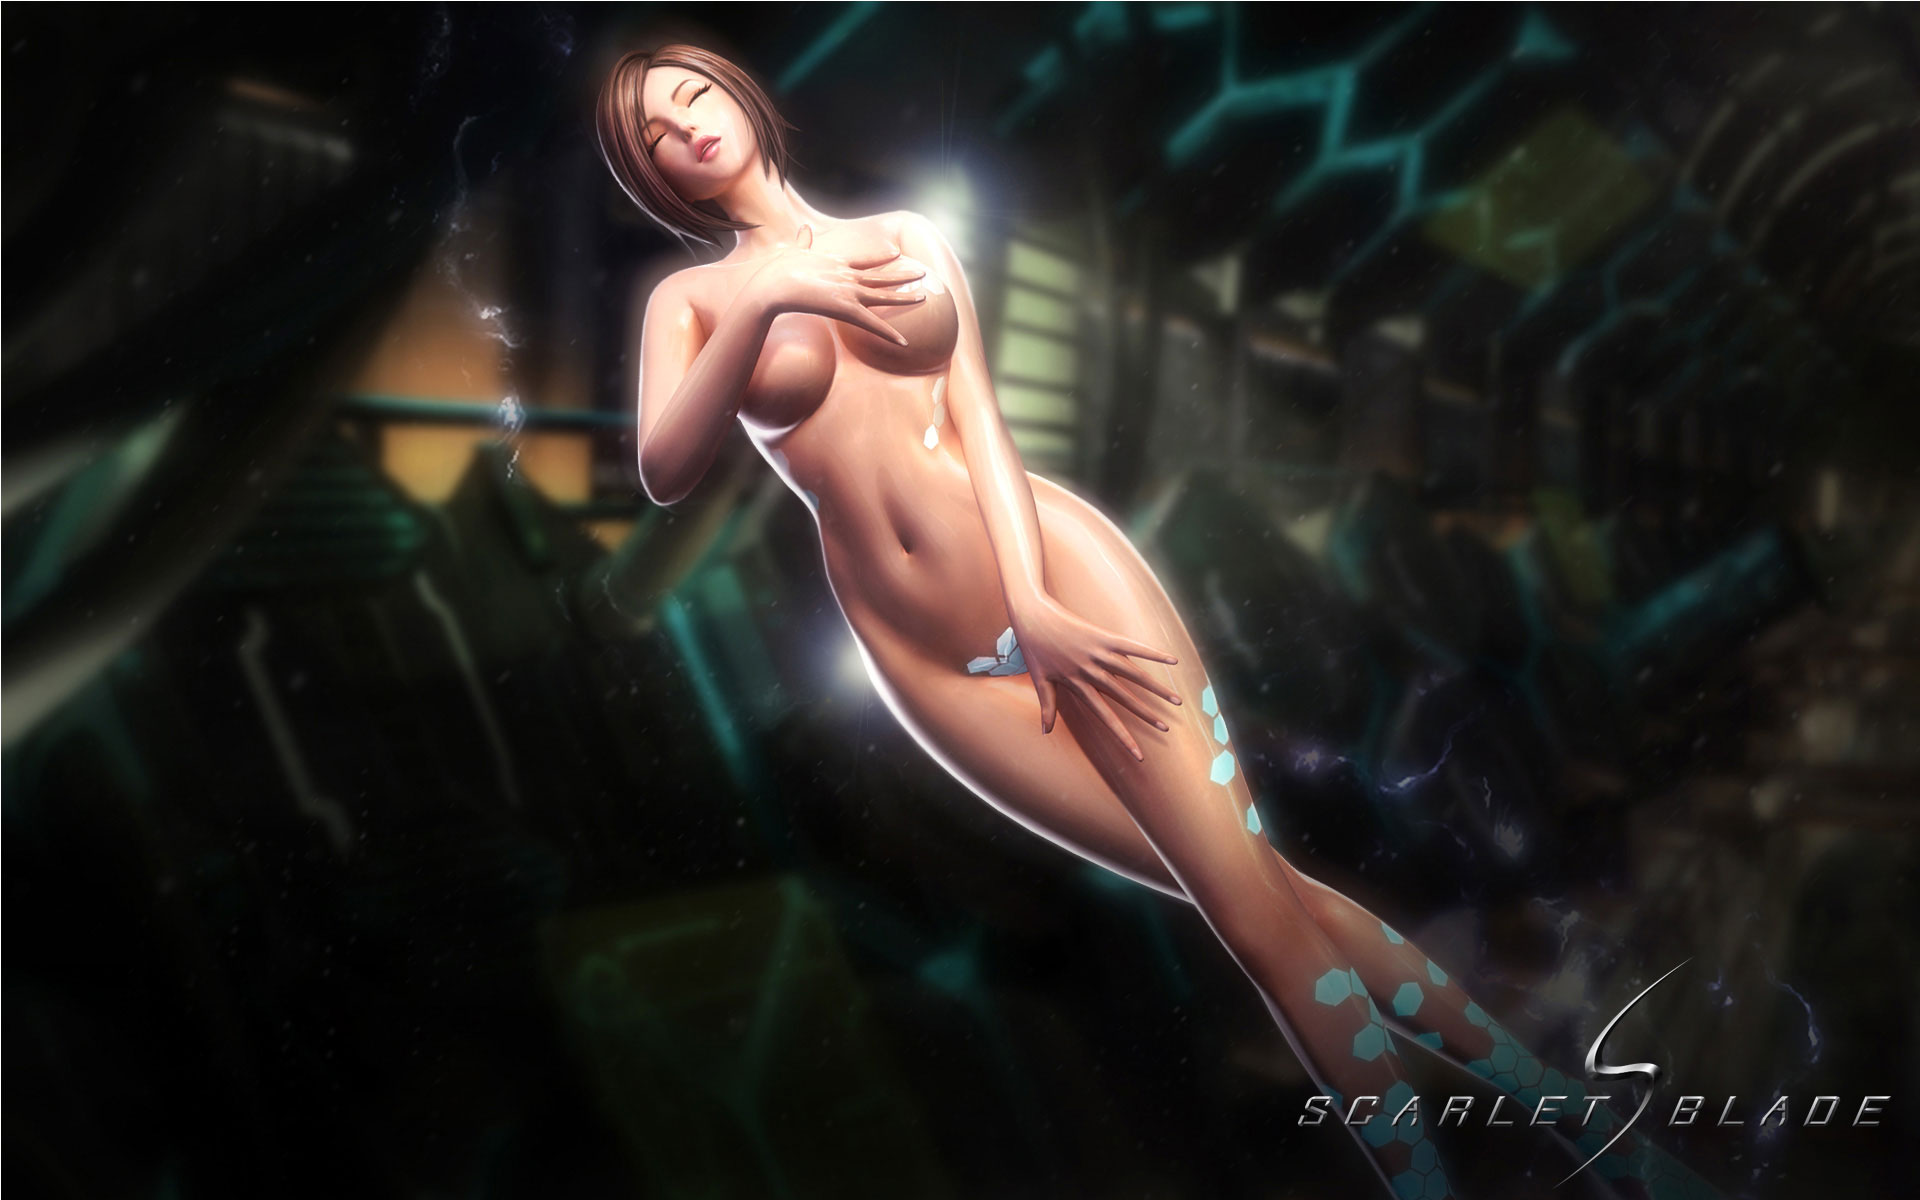 Ghost girl 3d hot fotos nsfw movie